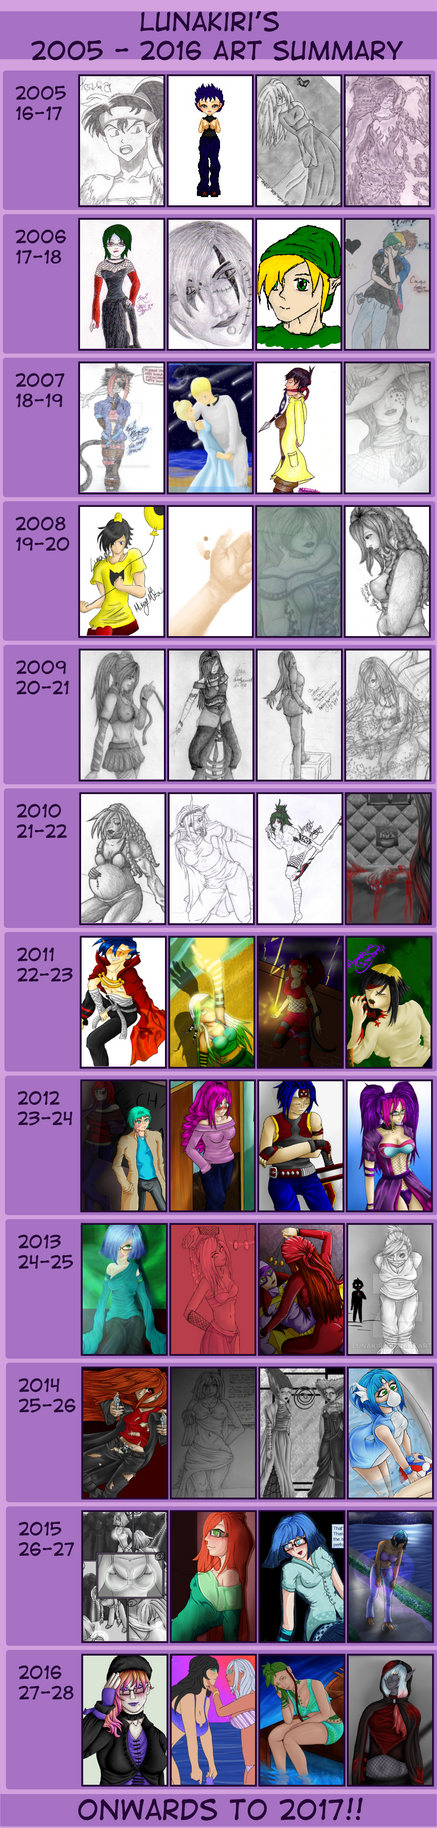 Art Summary - 2oo5-2o16 by Lunakiri